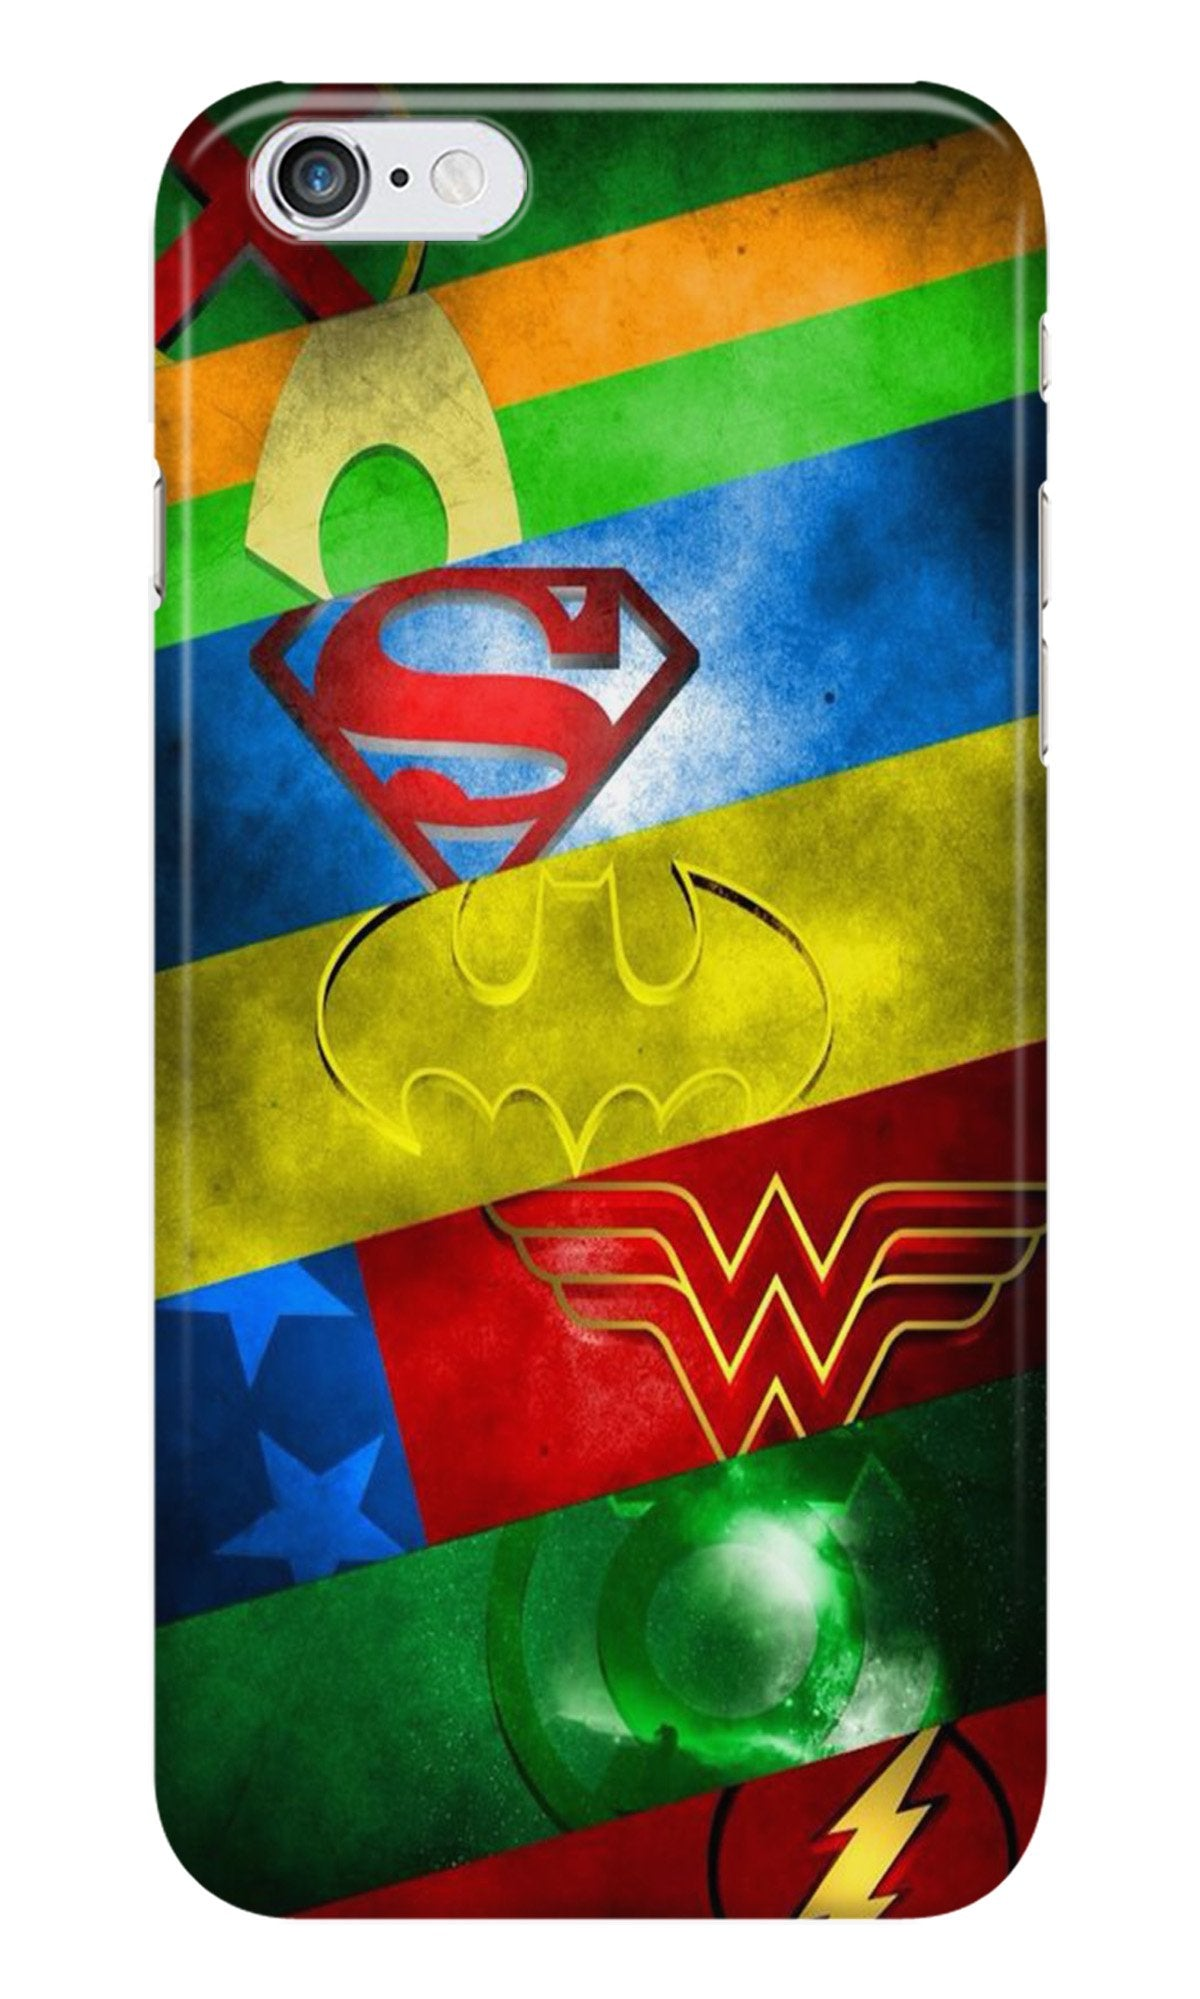 Superheros Logo Case for Iphone 6/6S (Design No. 251)